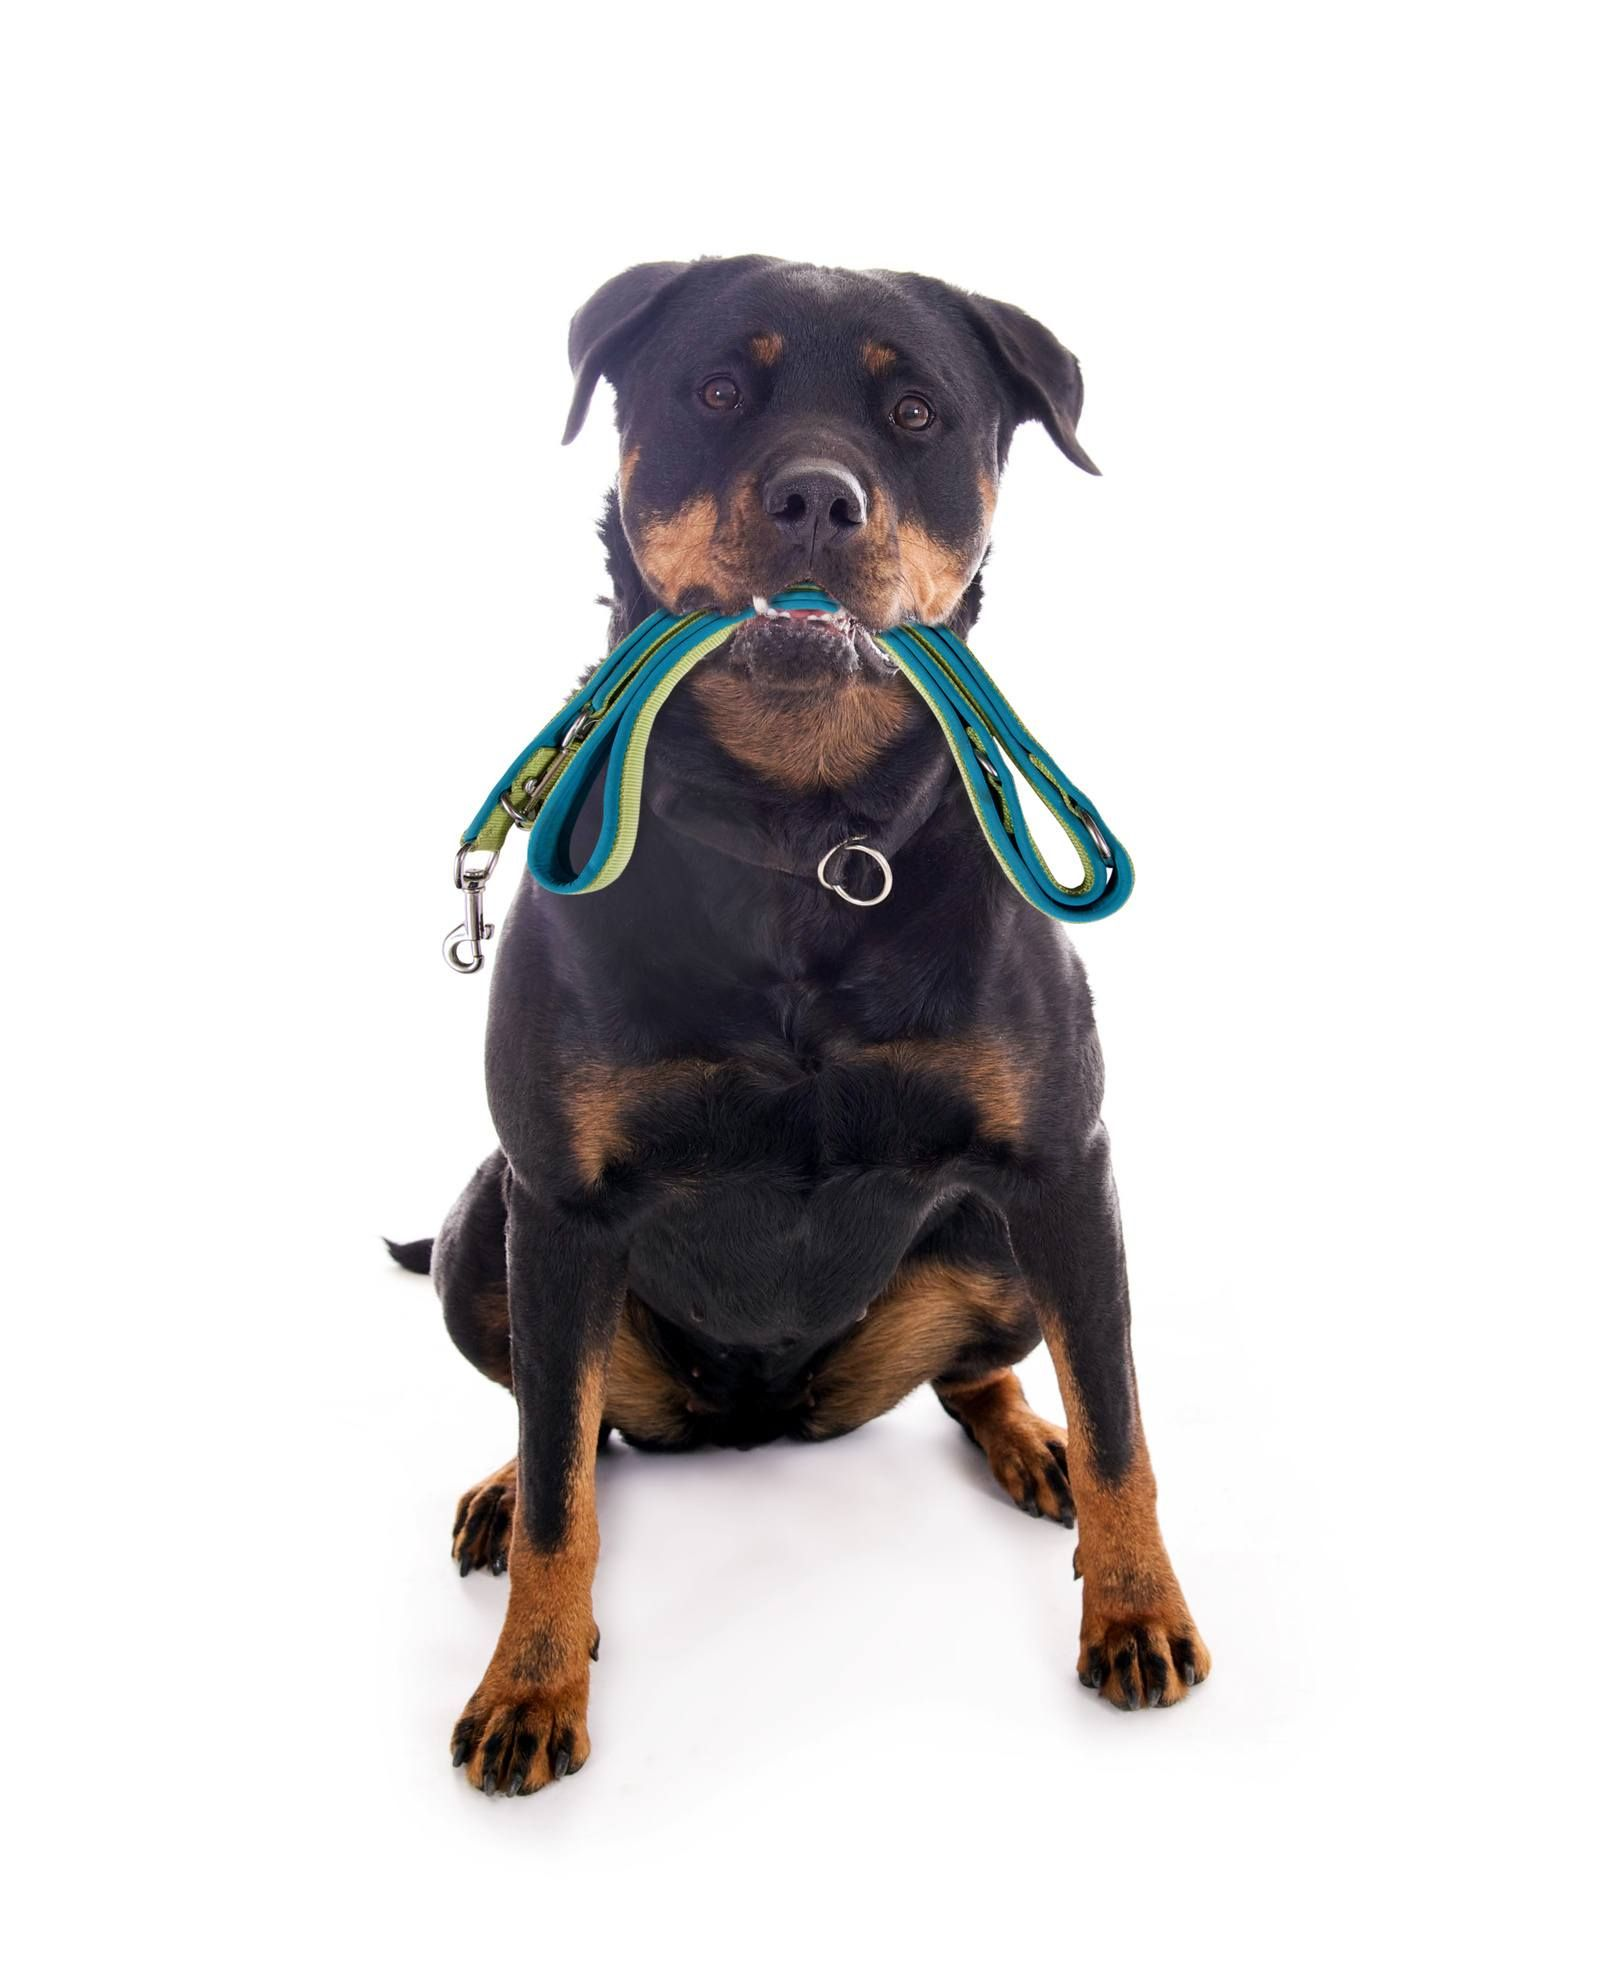 owning a rottweiler